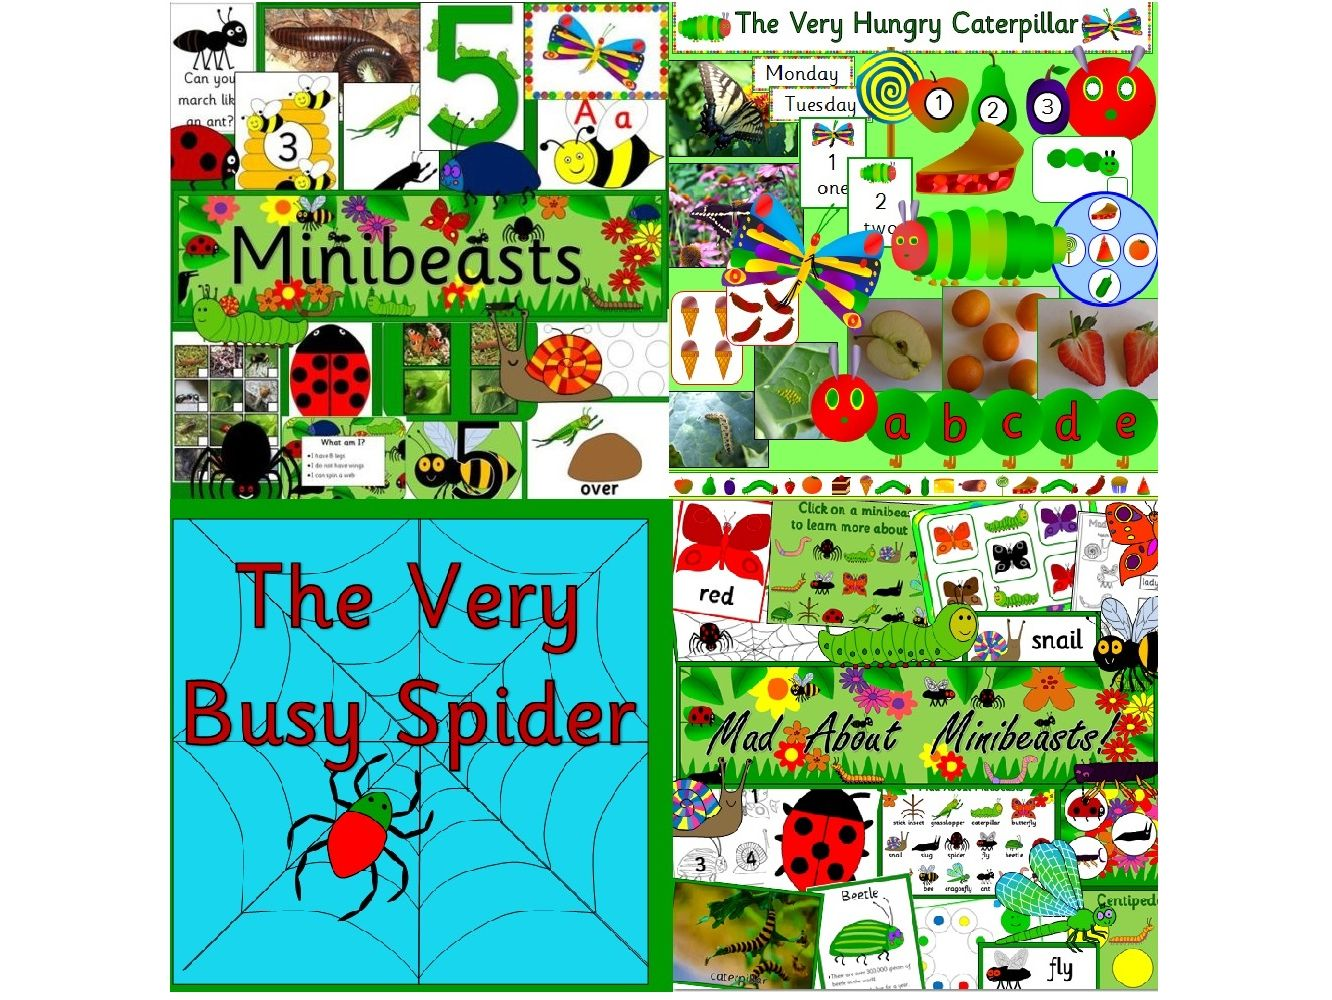 Minibeasts topic pack and story resources- Very Hungry Caterpillar